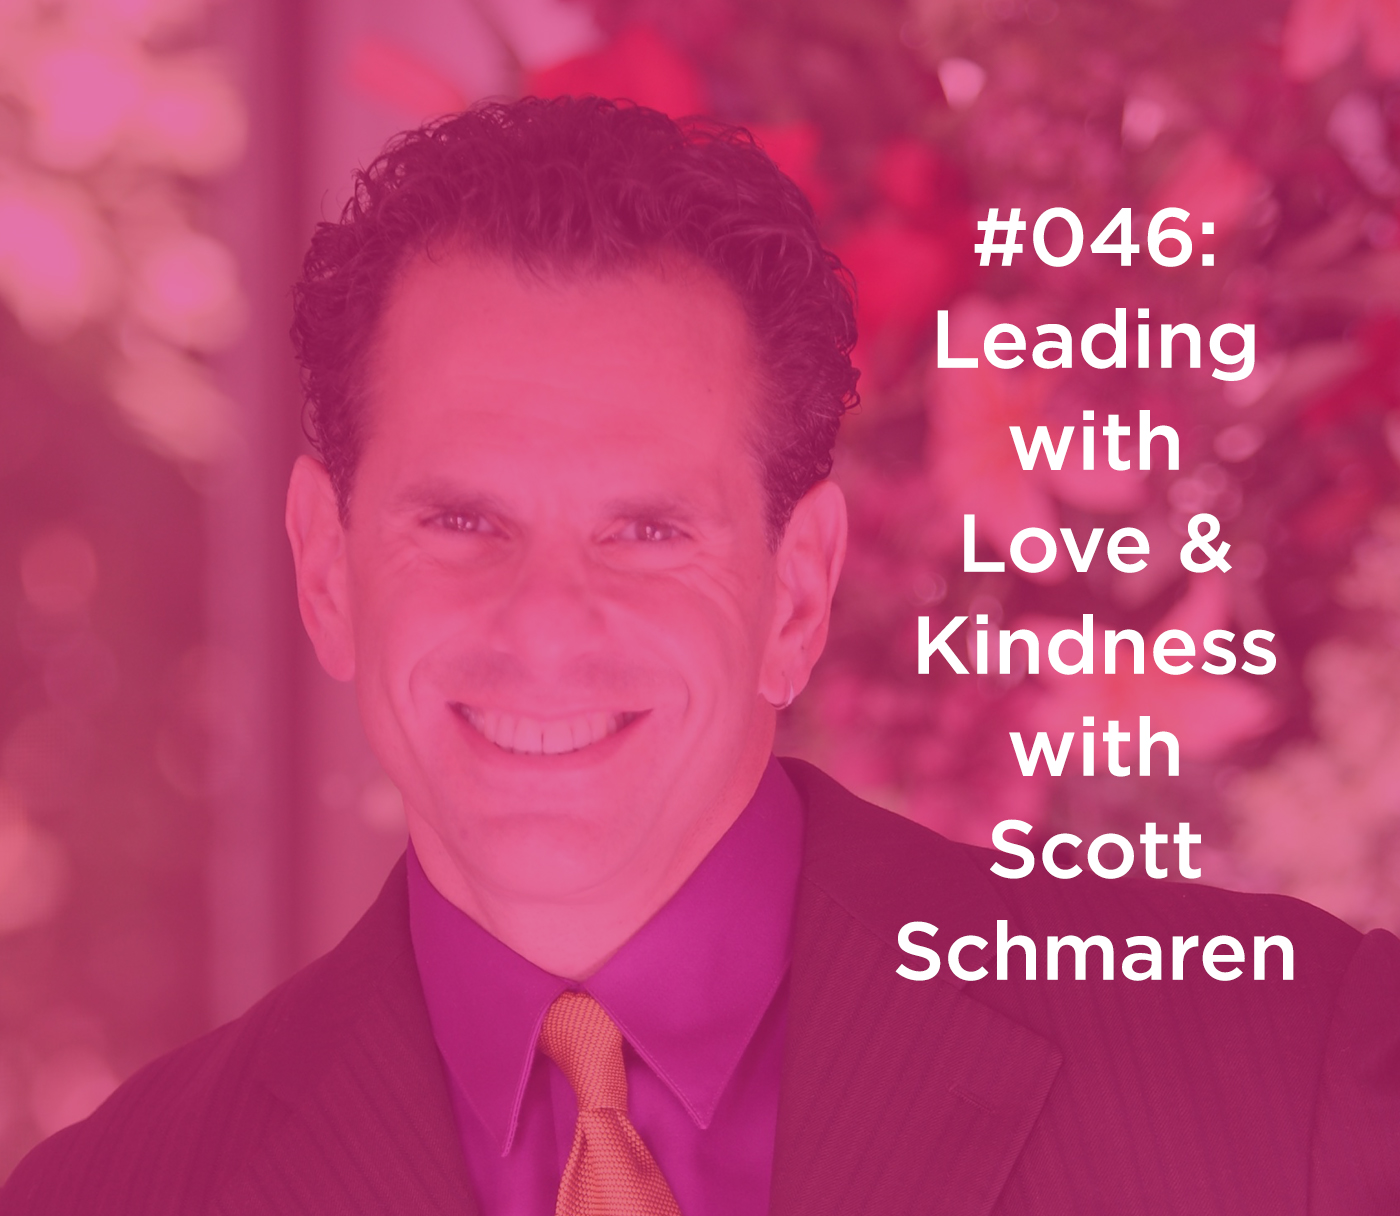 Leading with Love & Kindness with Scott Schmaren